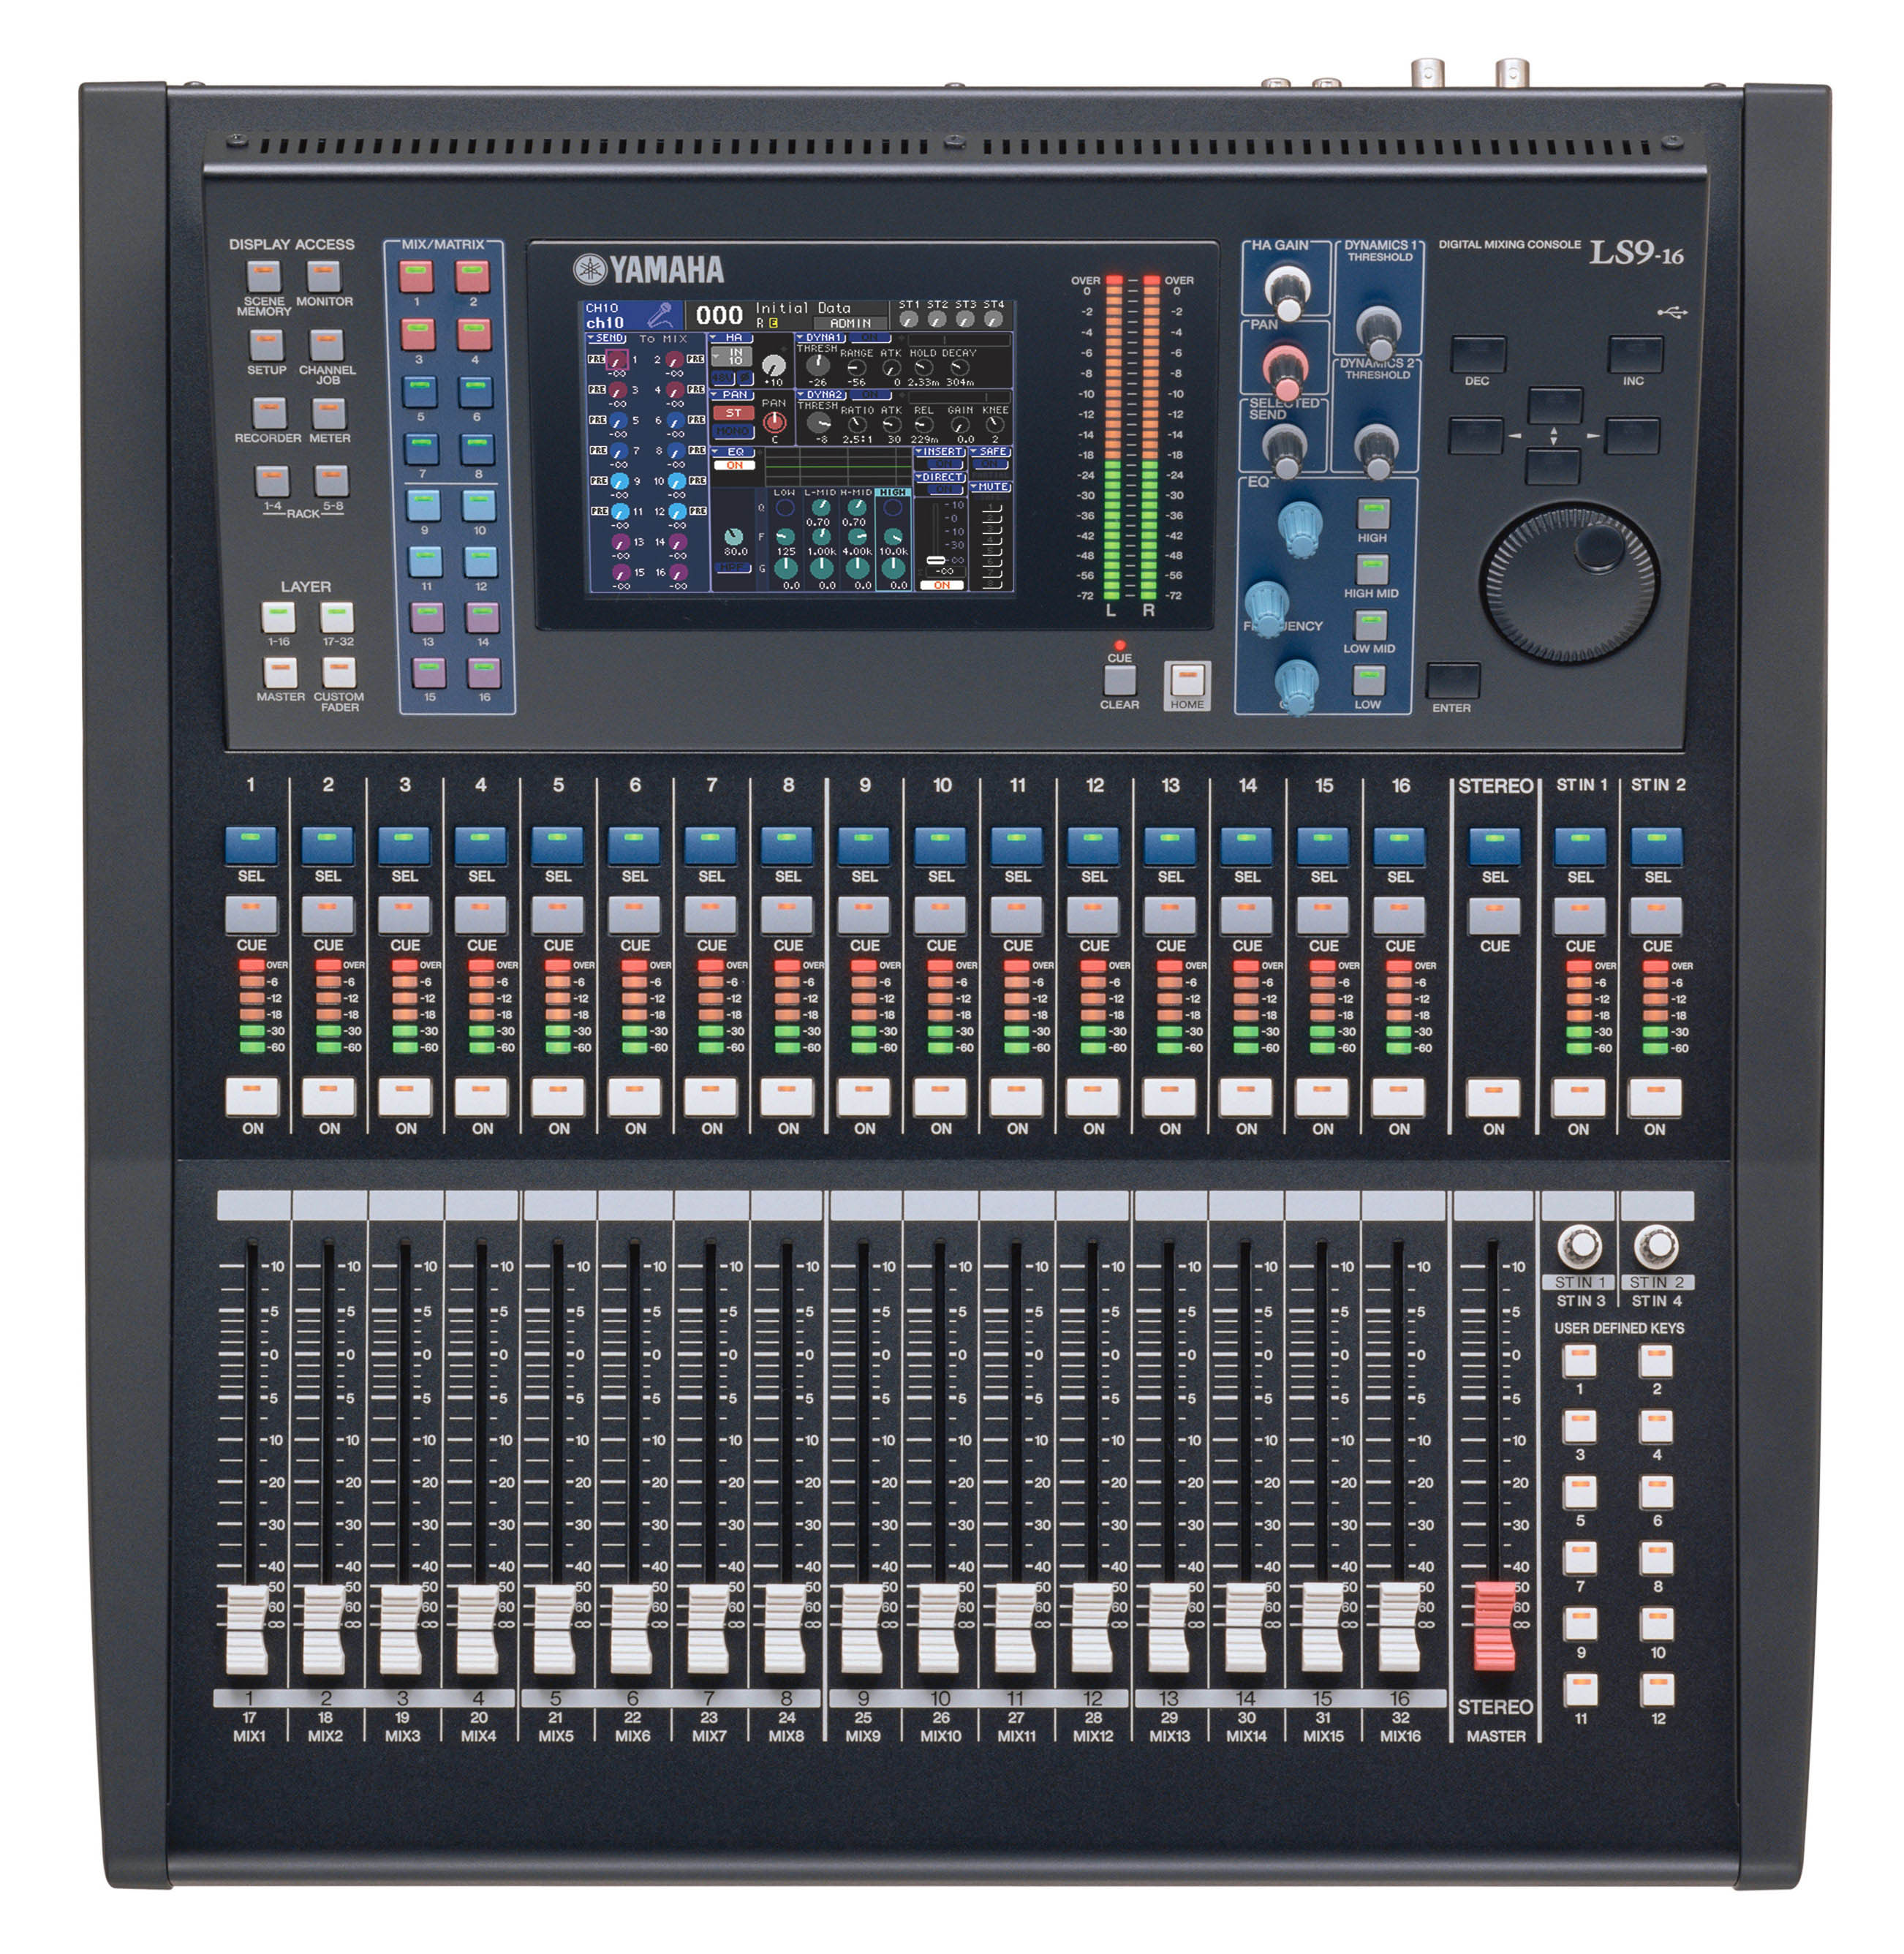 721 Mixing Digital Sound Music Audio Mixers Projects Circuits 7 Figure 720 A Console